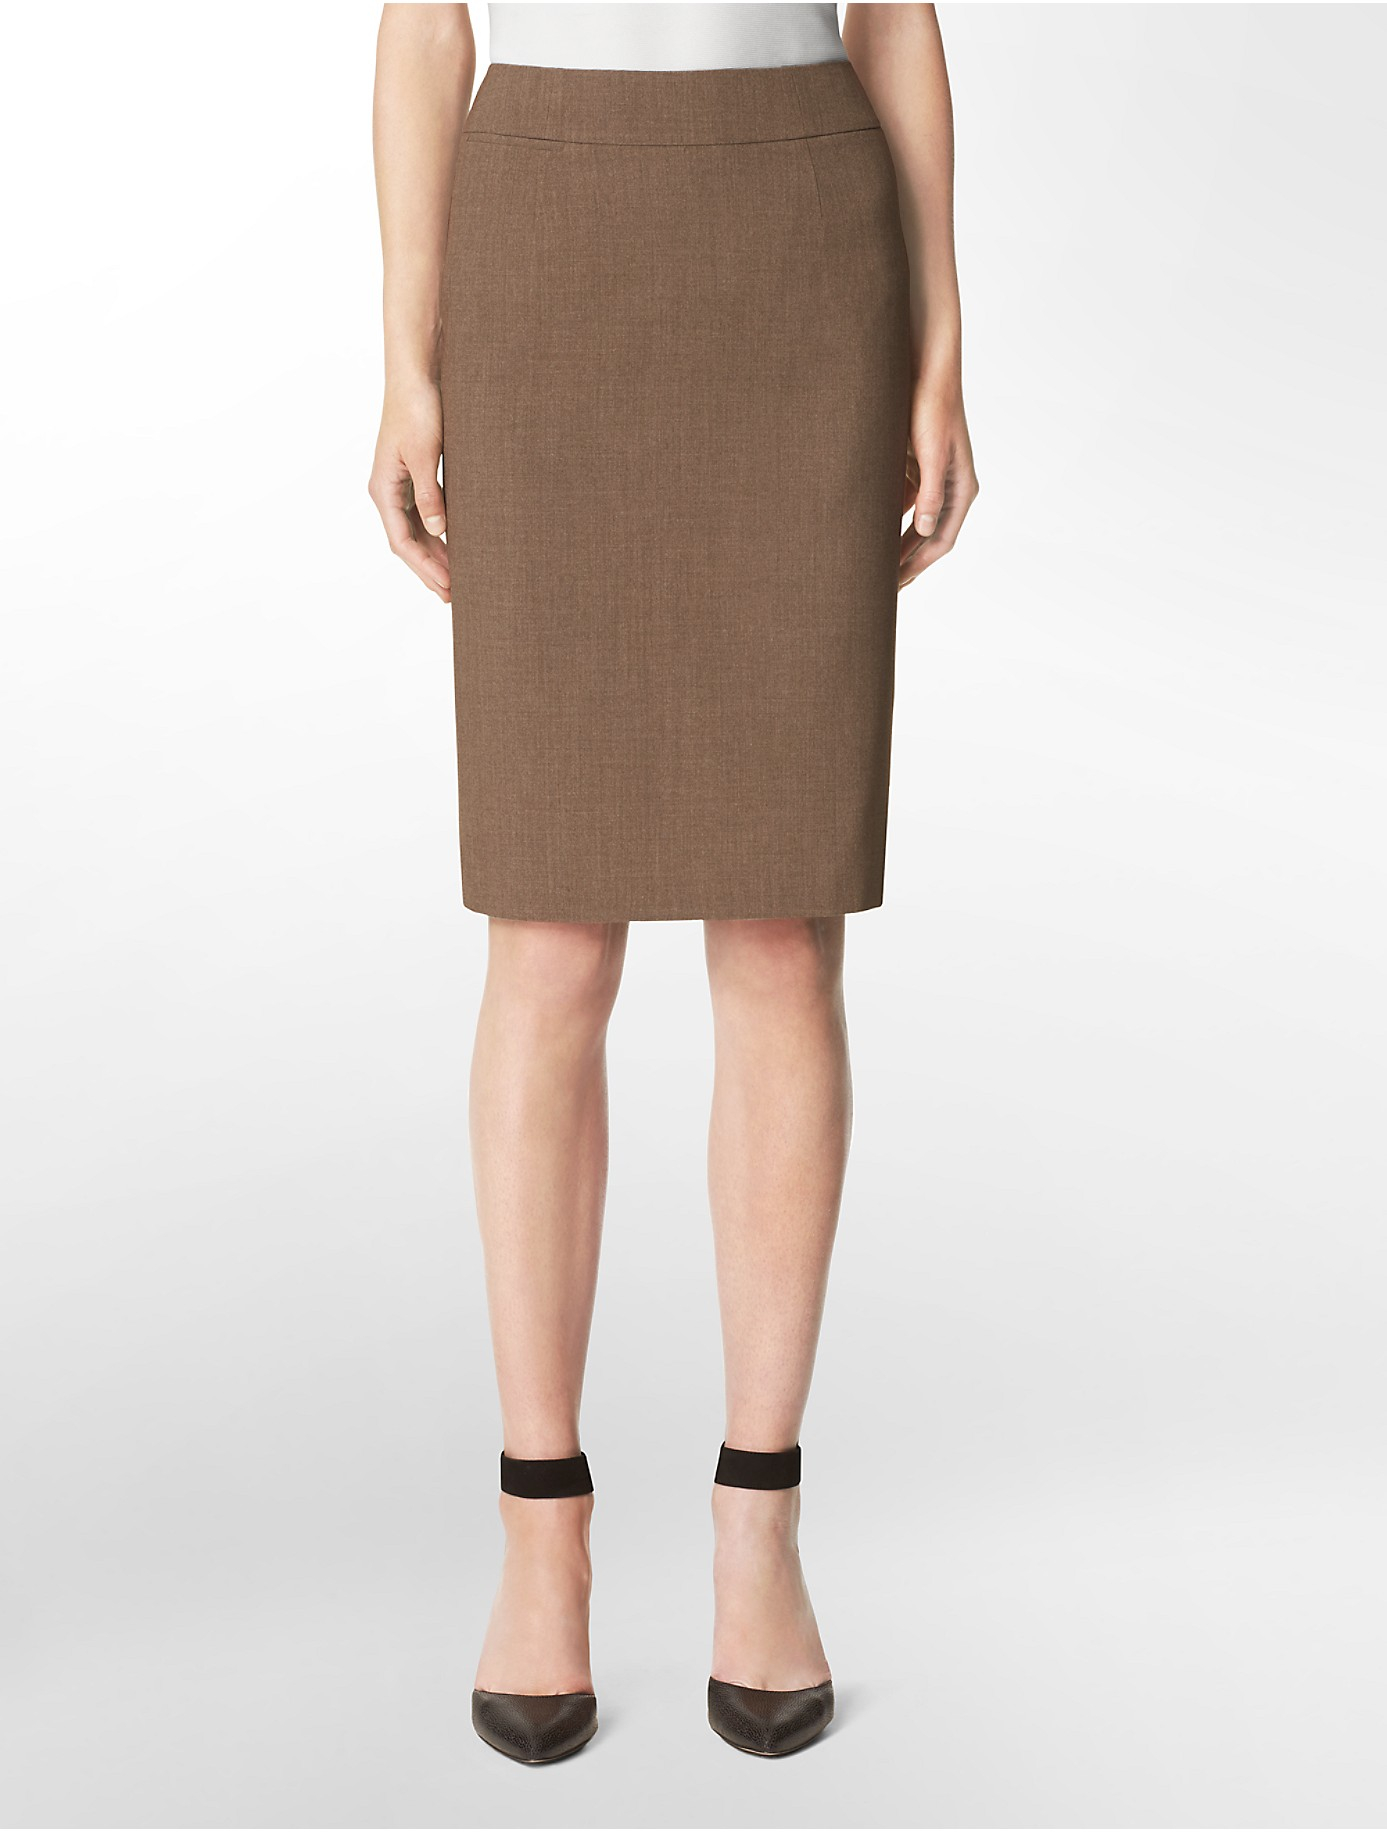 Calvin klein Heather Taupe Pencil Suit Skirt in Brown   Lyst